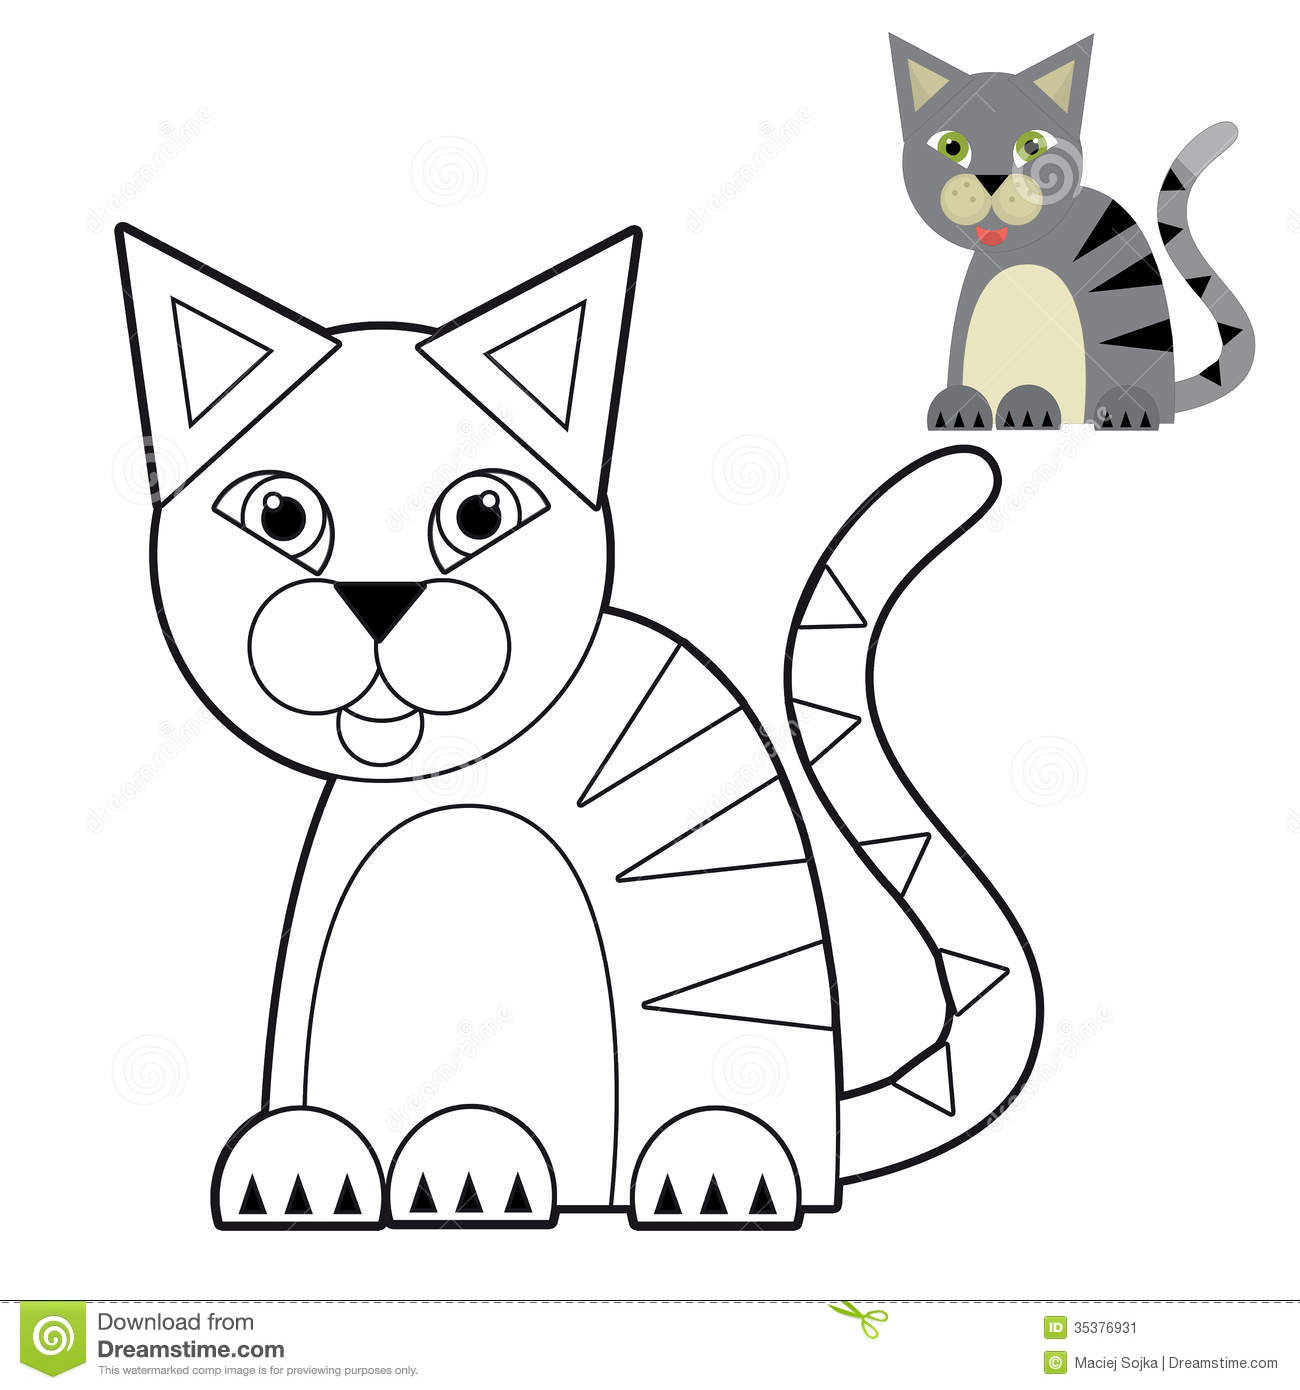 Cartoon Animal - Coloring Page - Illustration For The ...